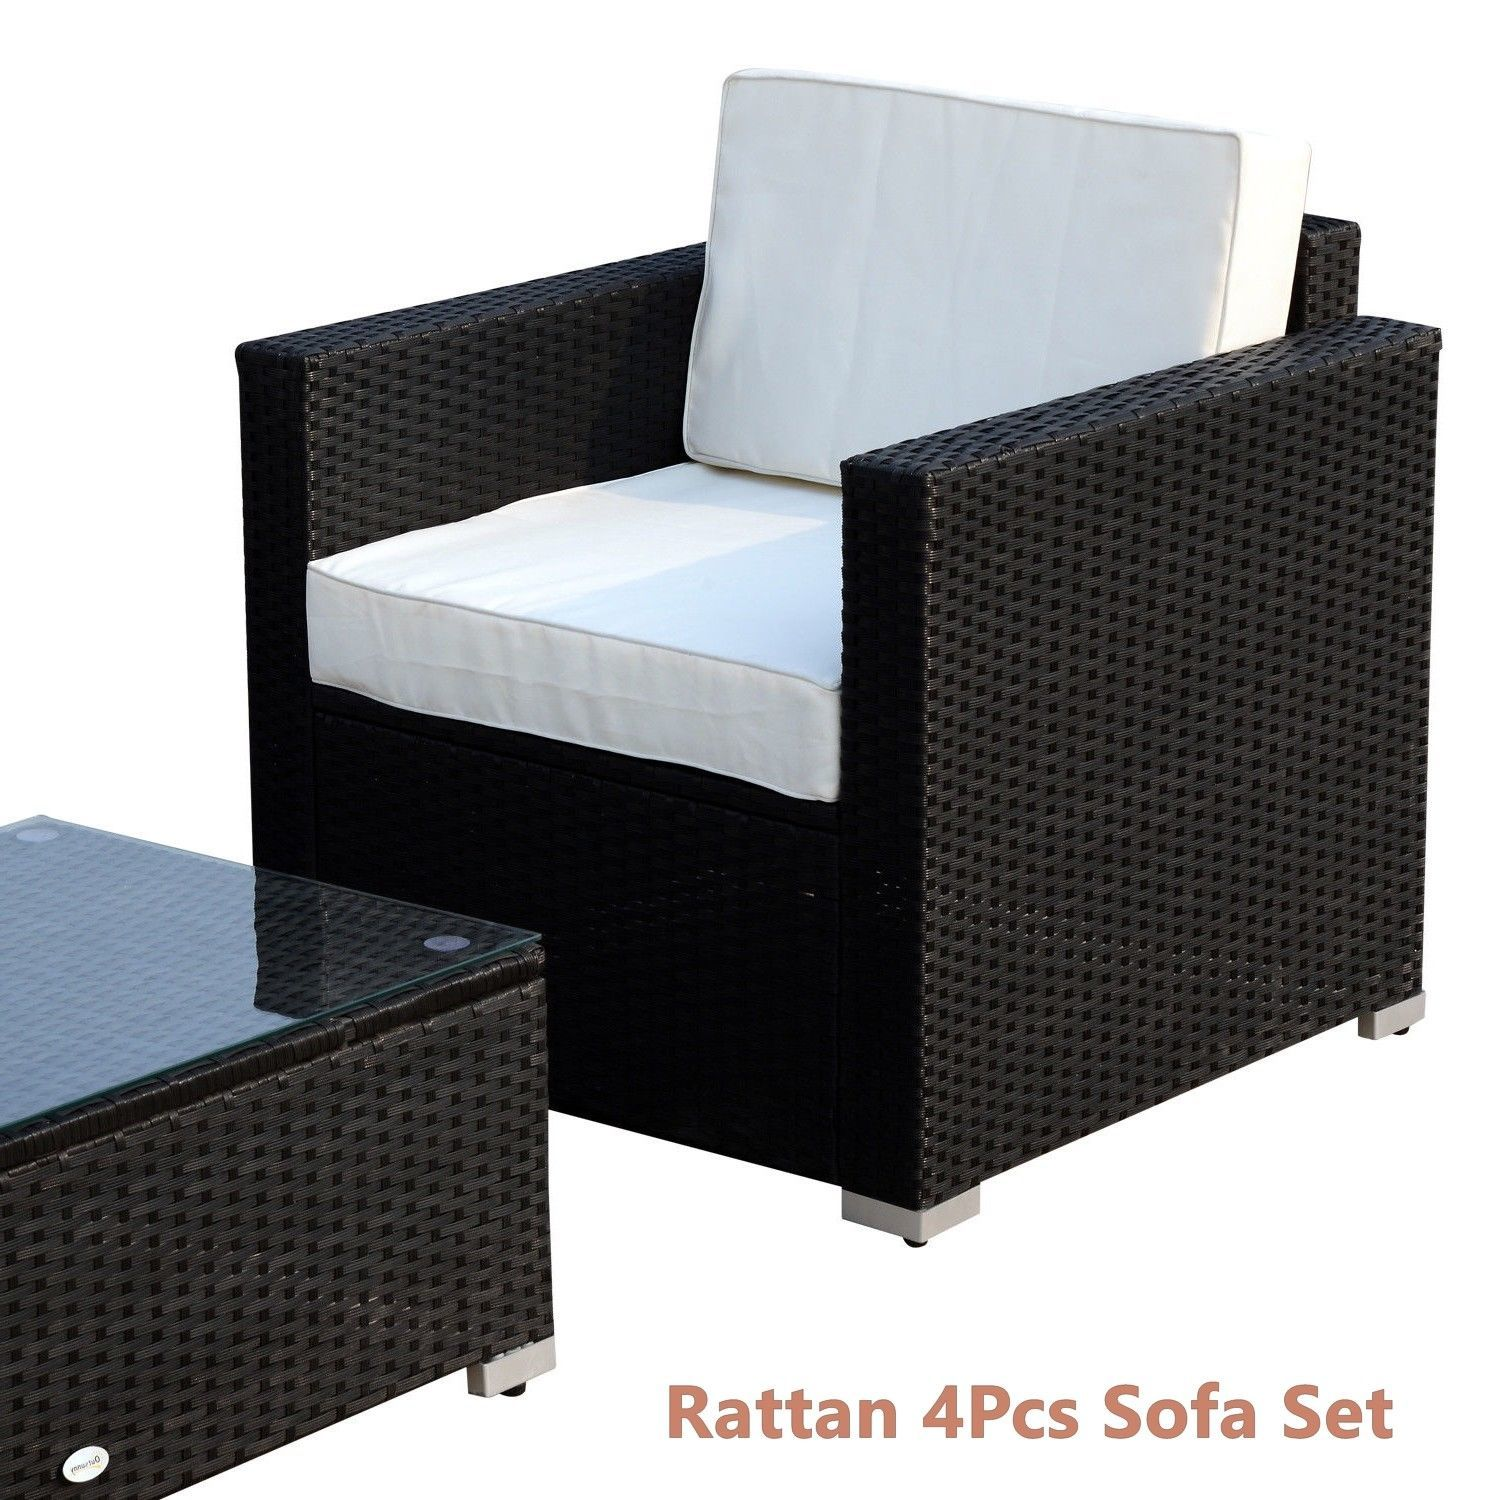 Rattan Sofa Cushioned Set Garden Wicker Glass Top Table Armchairs 4Pcs Black New image 5